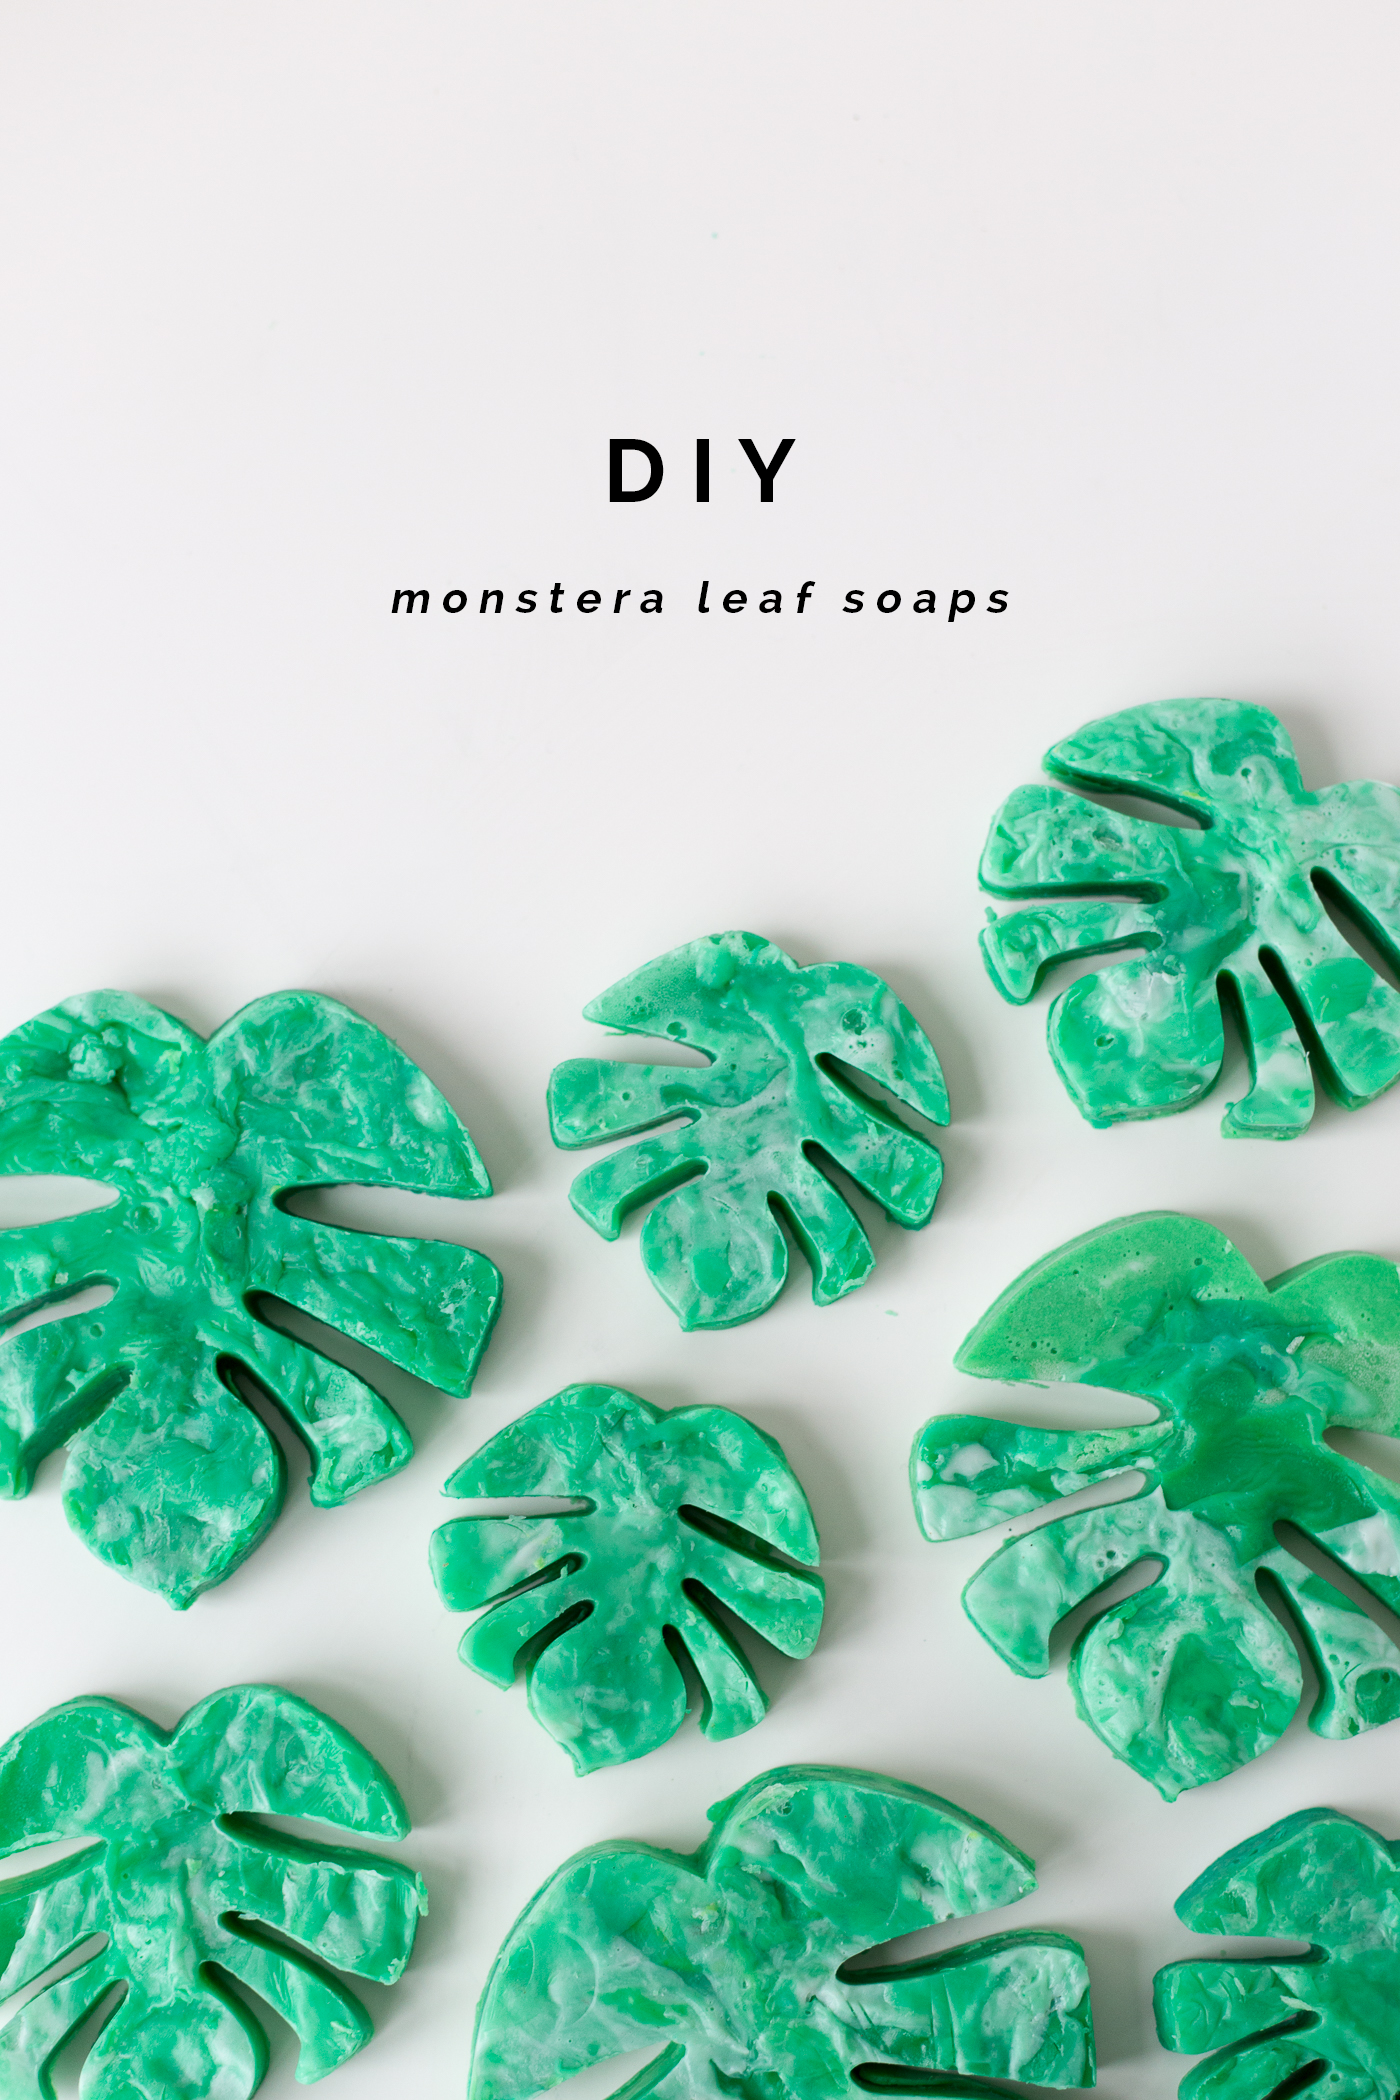 http://fallfordiy.com/wp-content/uploads/2016/12/DIY-Monstera-Swiss-Cheese-Leaf-Soaps-_-@fallfordiy.png